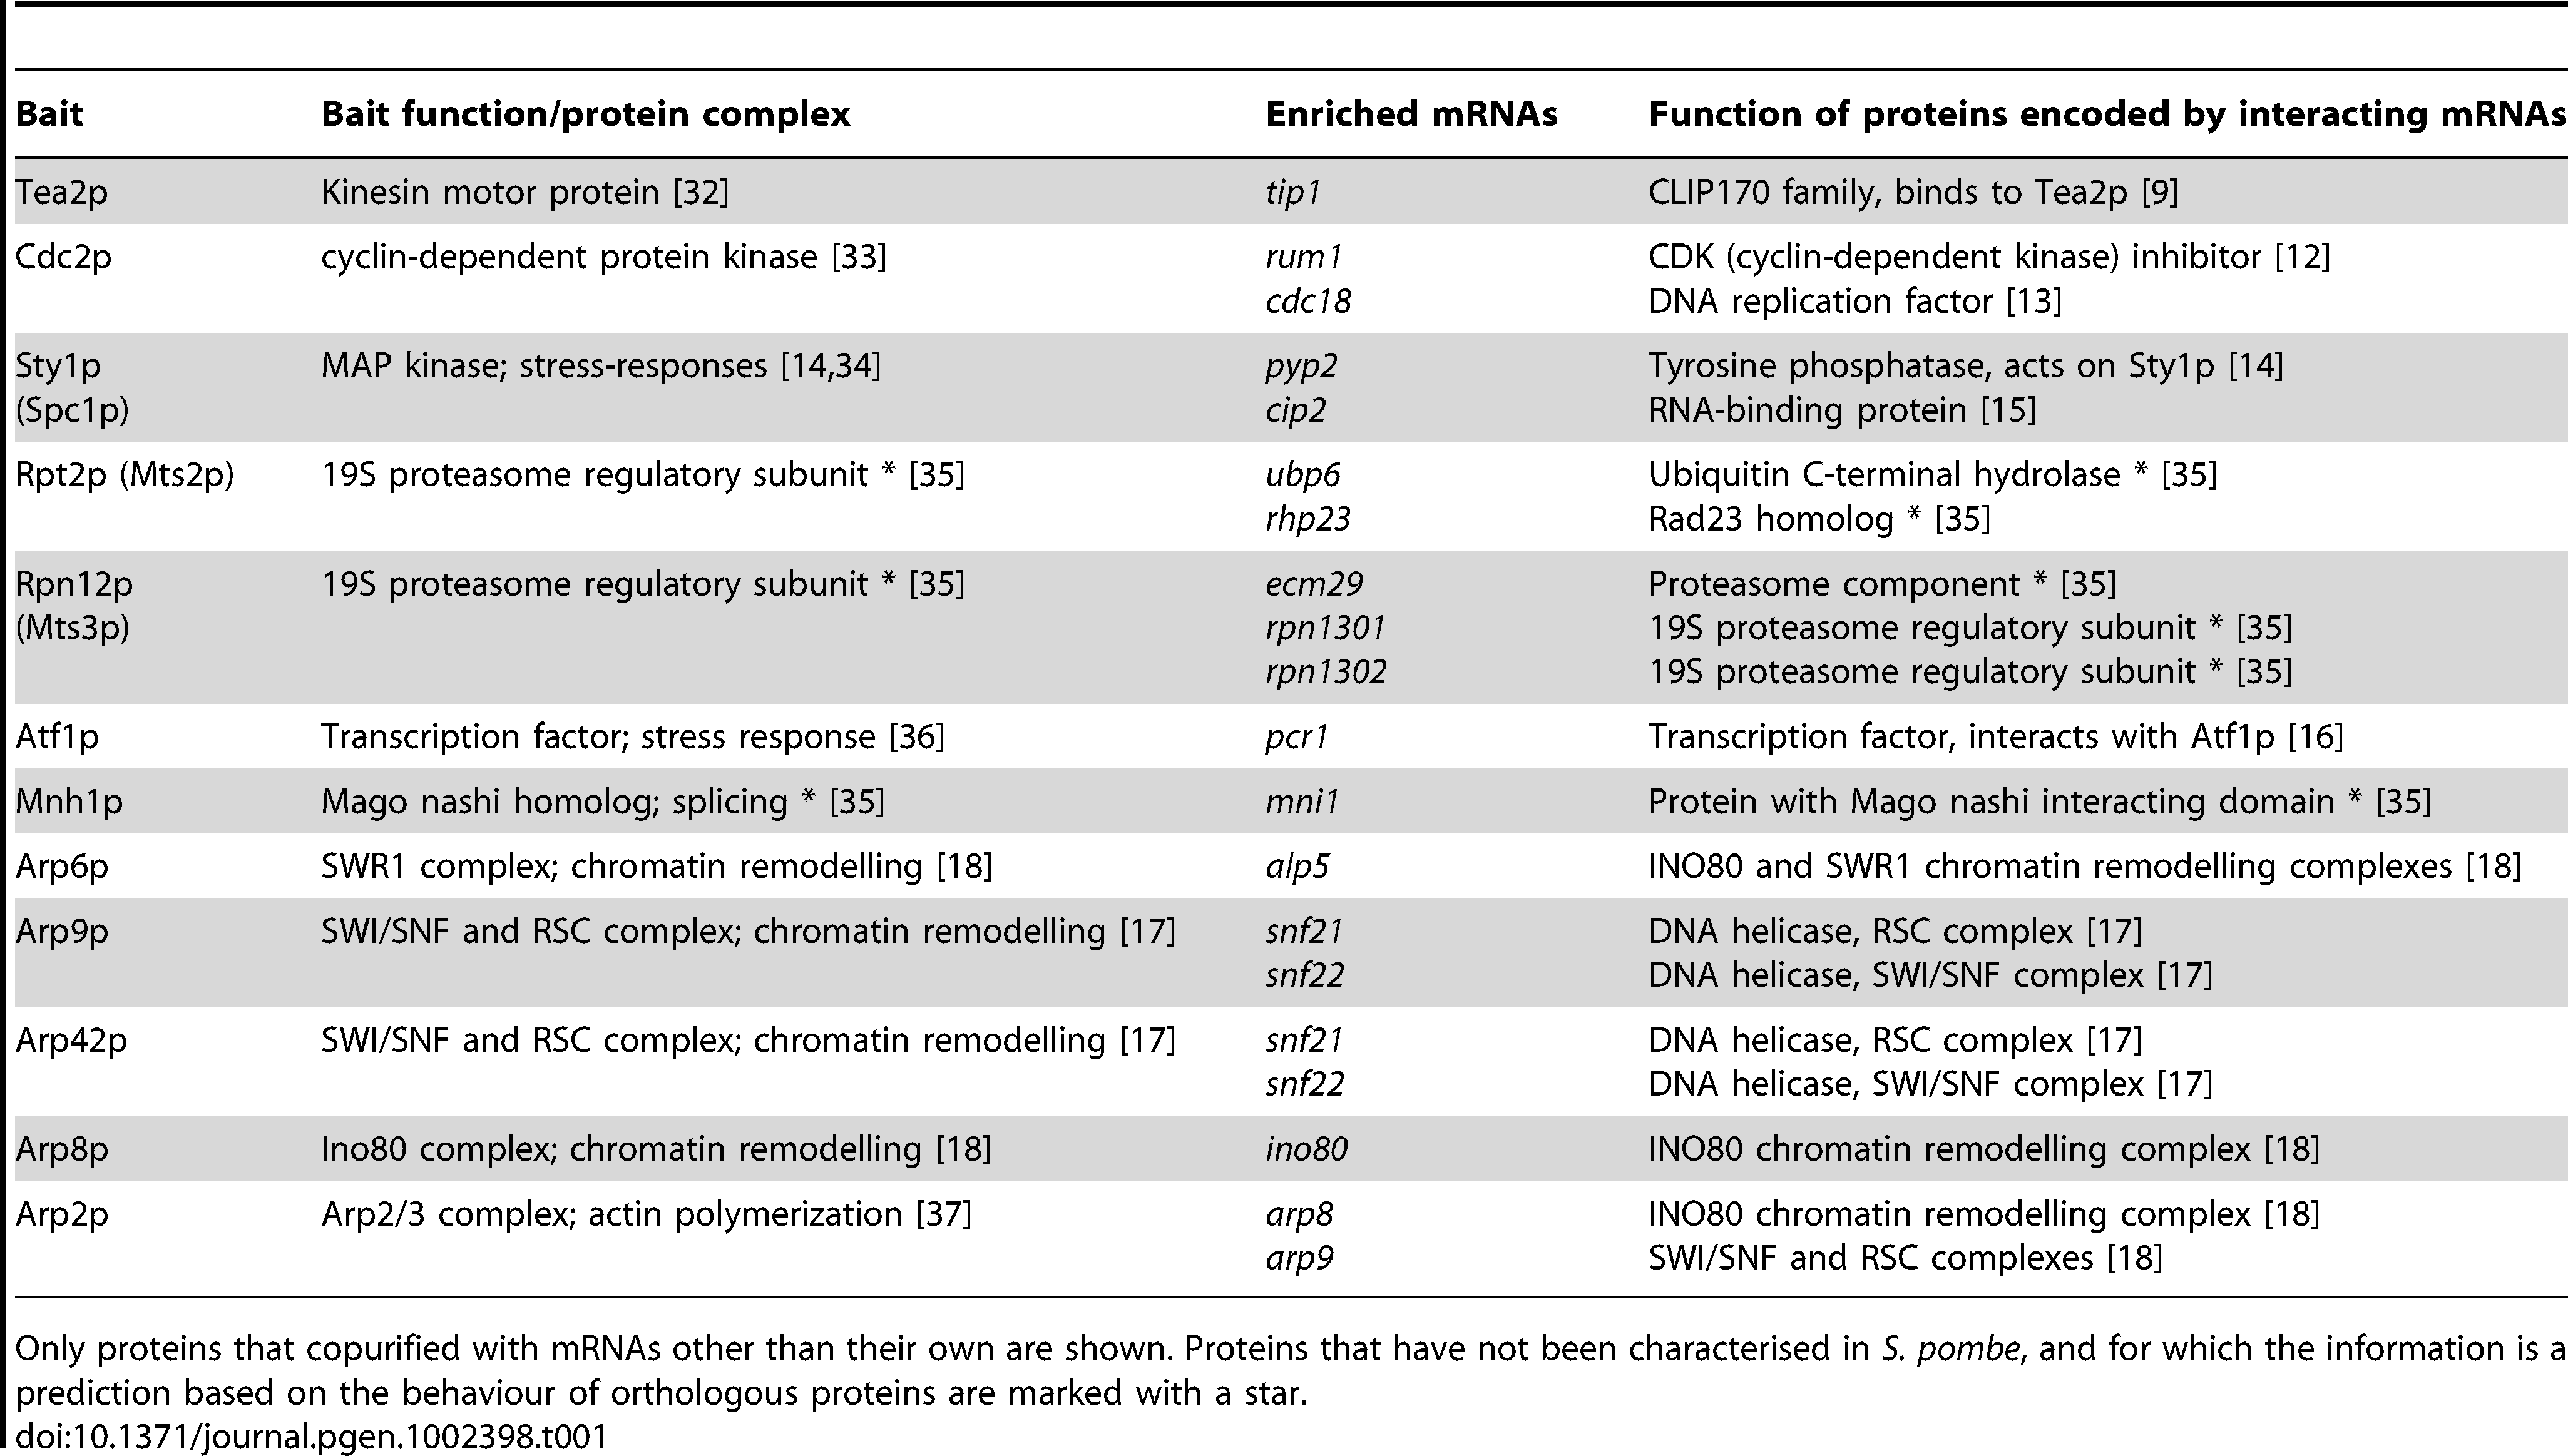 Proteins analysed by RIp-chip and mRNAs associated with them.